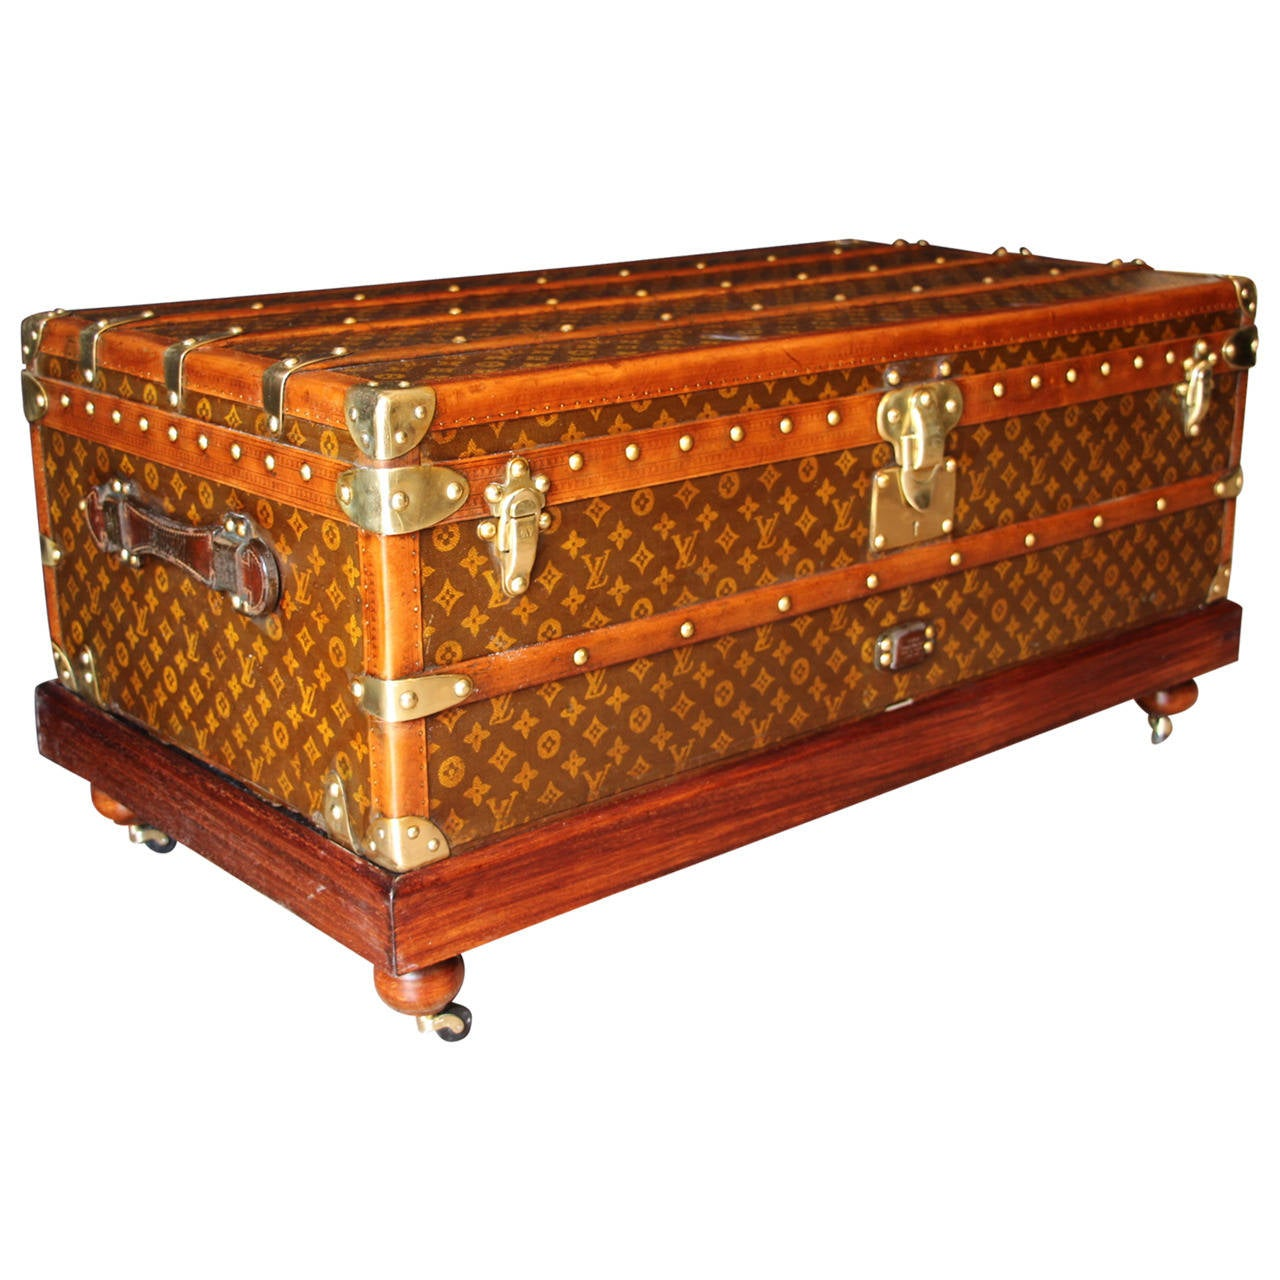 Lv Trunk Coffee Table: 1920s Louis Vuitton Cabin Trunk At 1stdibs